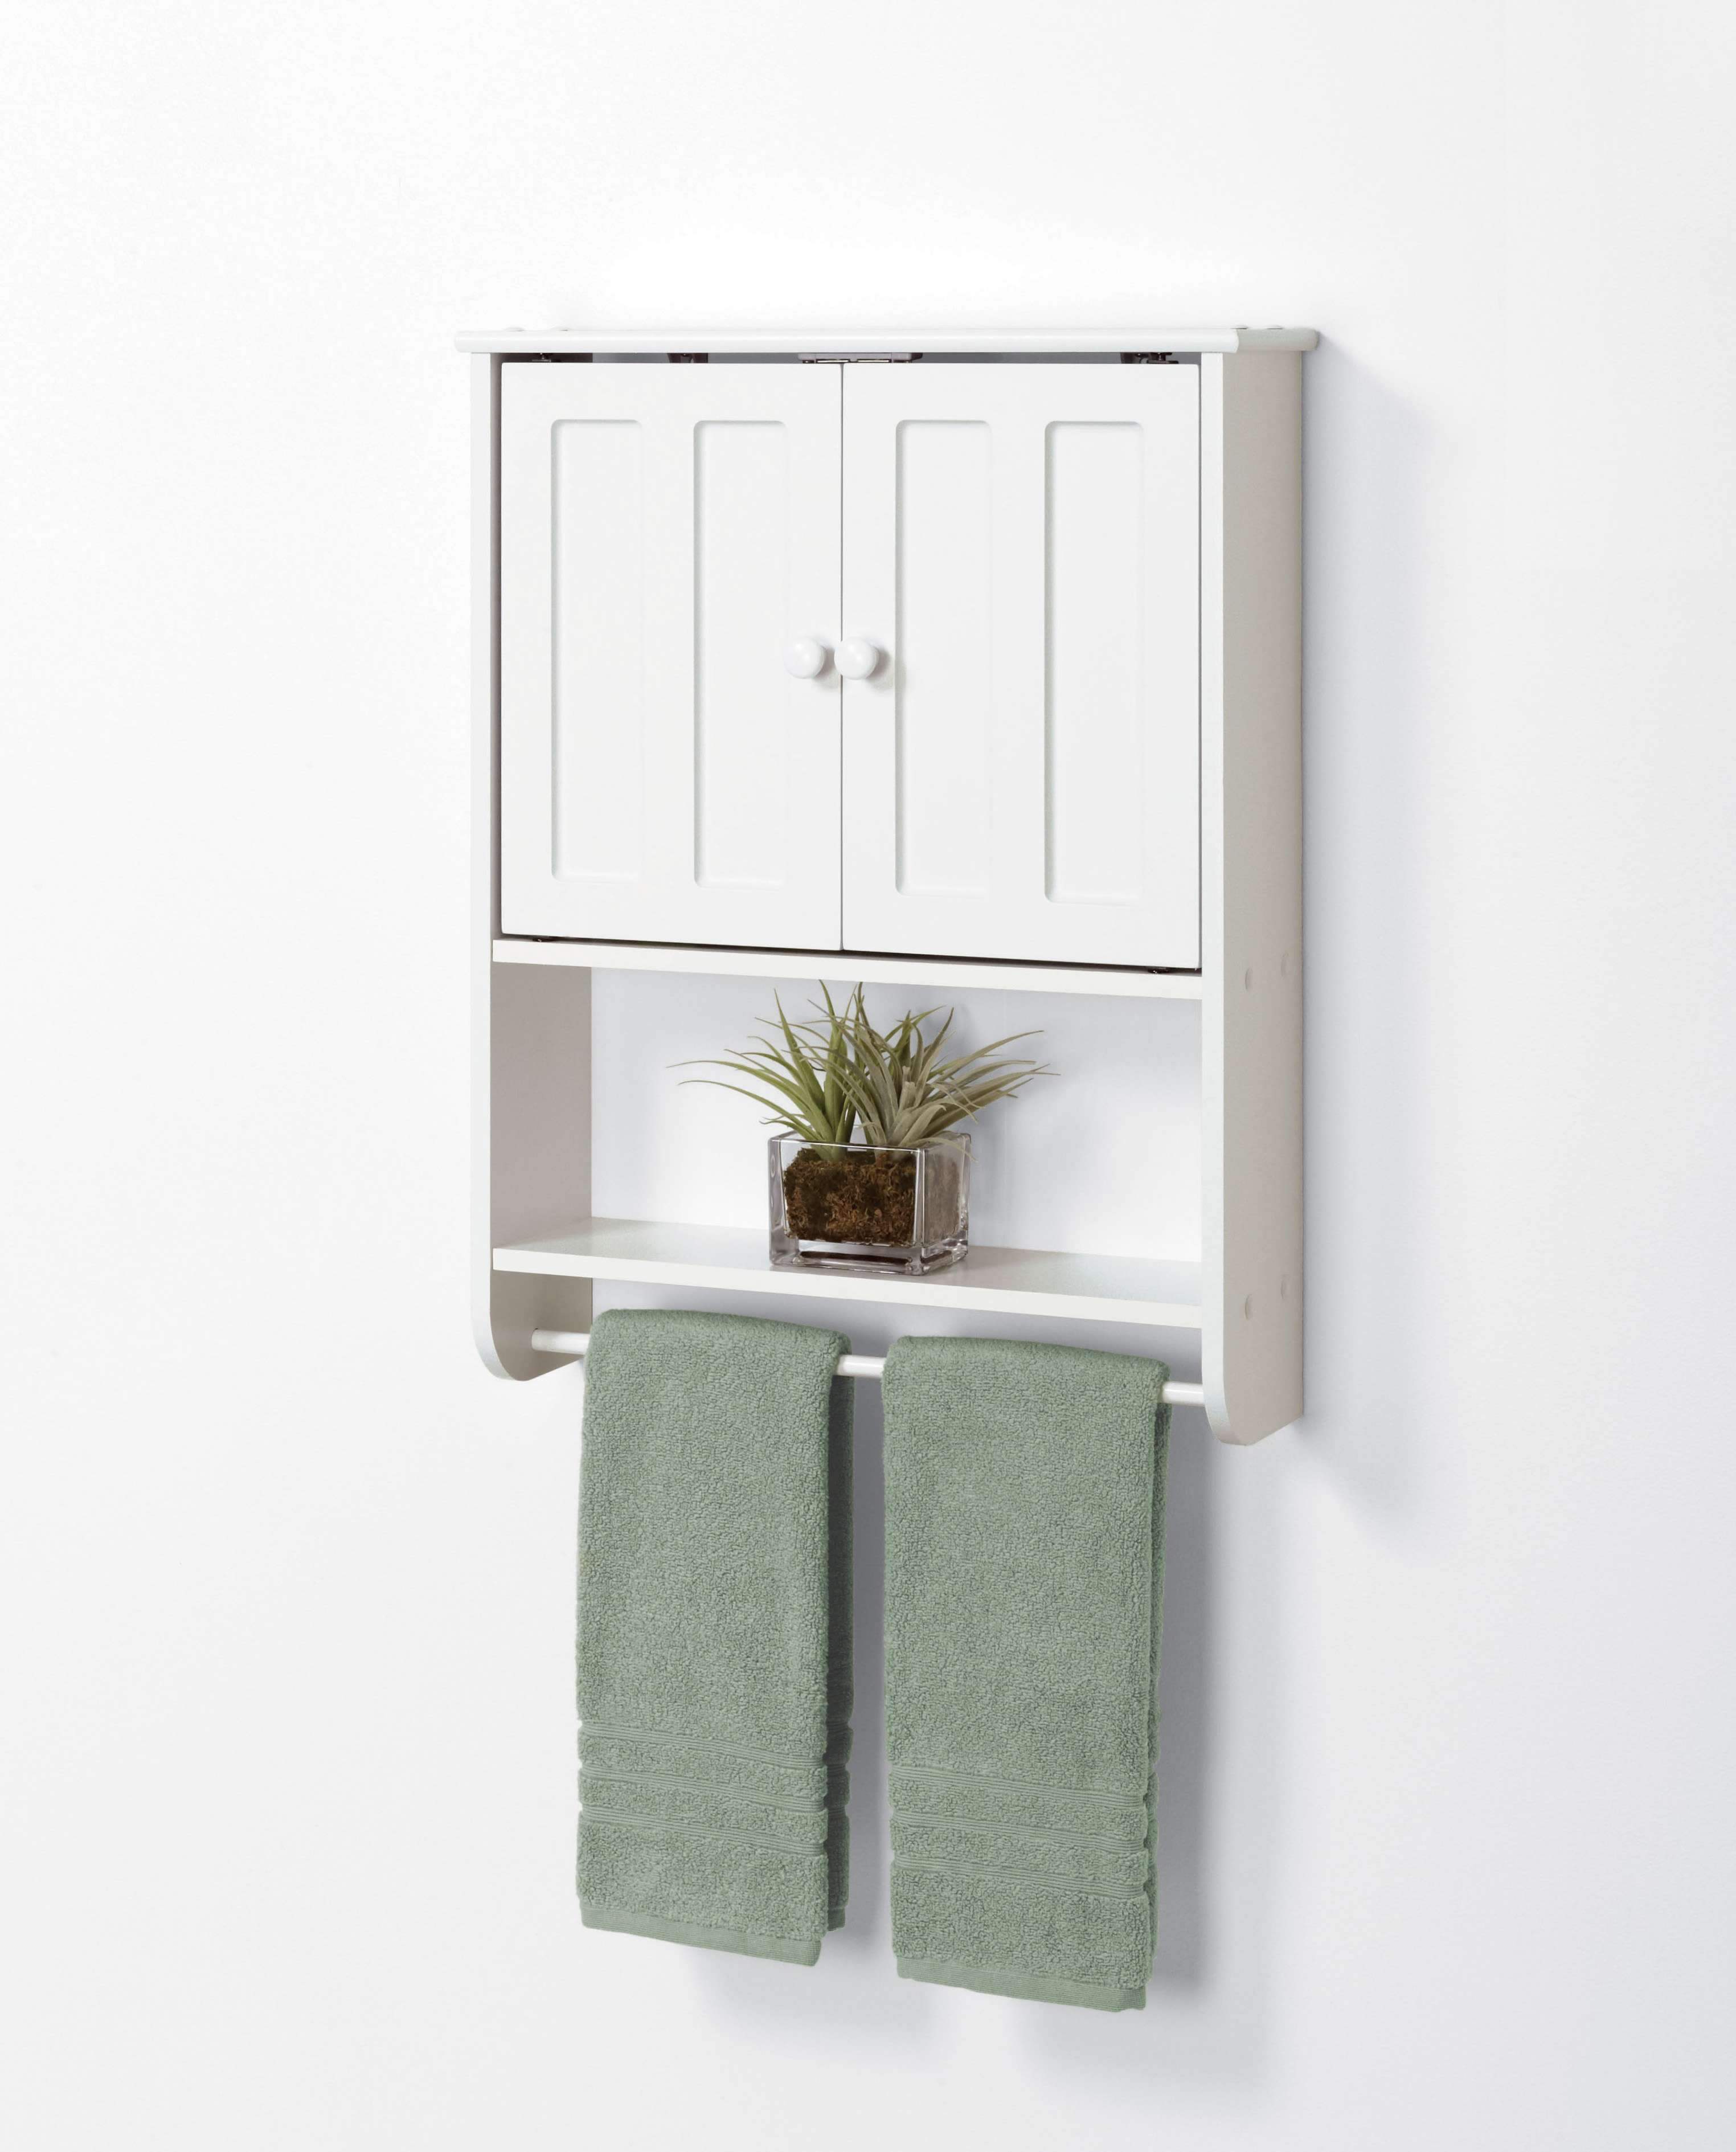 Callie Bathroom Storage Wall Cabinet, White Over The Toilet Cabinet With Towel Bar